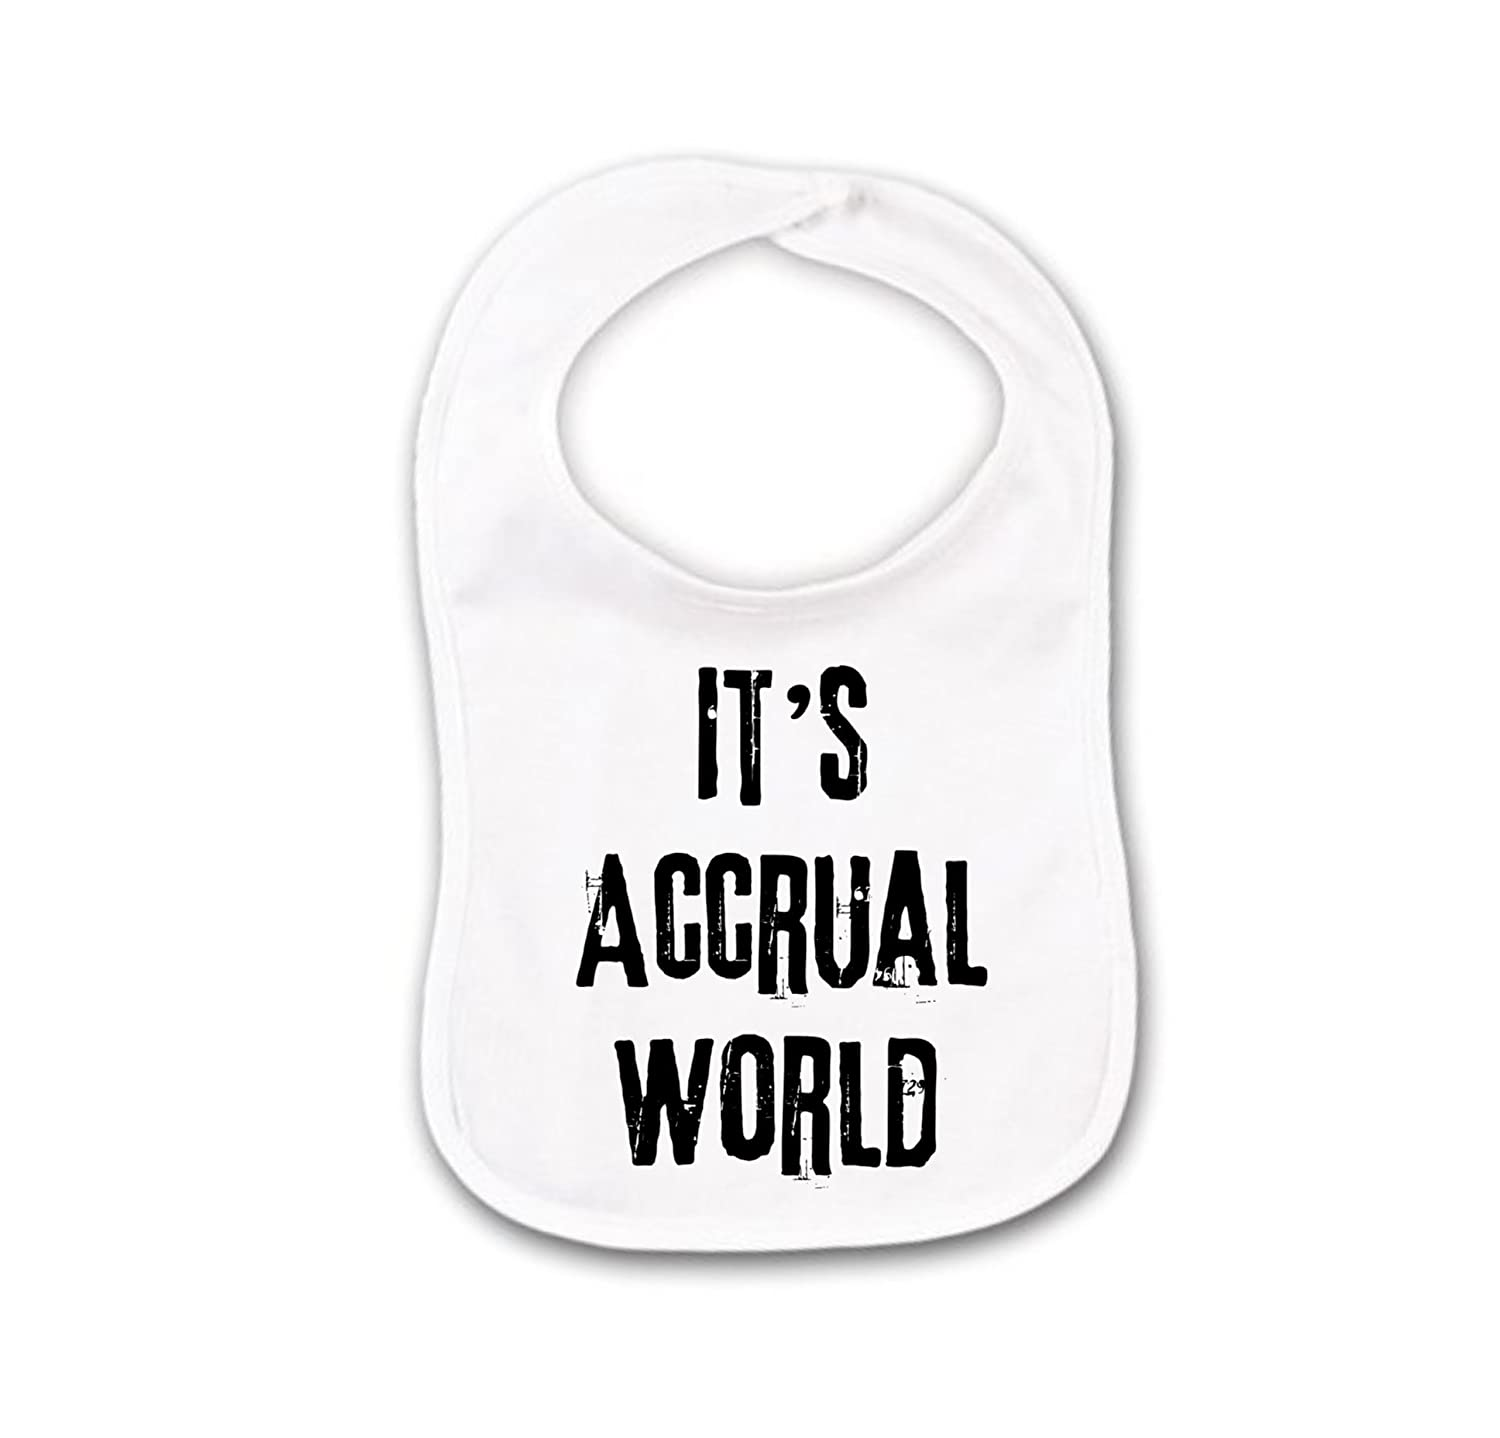 Funny Baby Bib or Burp Cloth With Sayings, It's Accrual World, Accountant, Accounting or CPA, Tax Preparer It's Accrual World